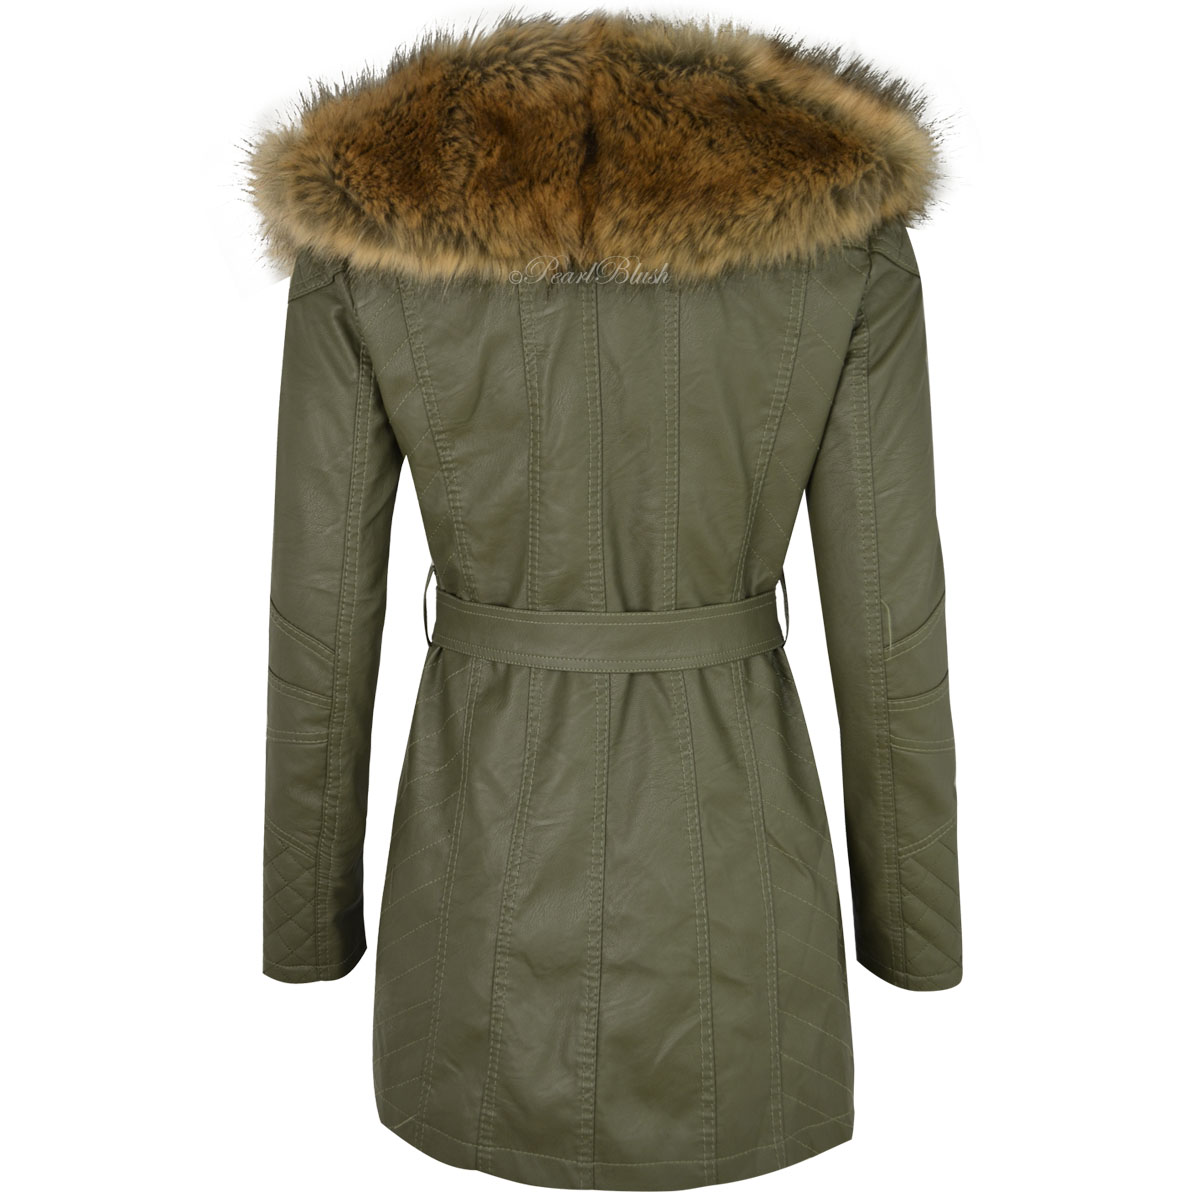 Similar Products to Mackage Kay Mid Length Winter Down Coat With Fur Collar - Womens